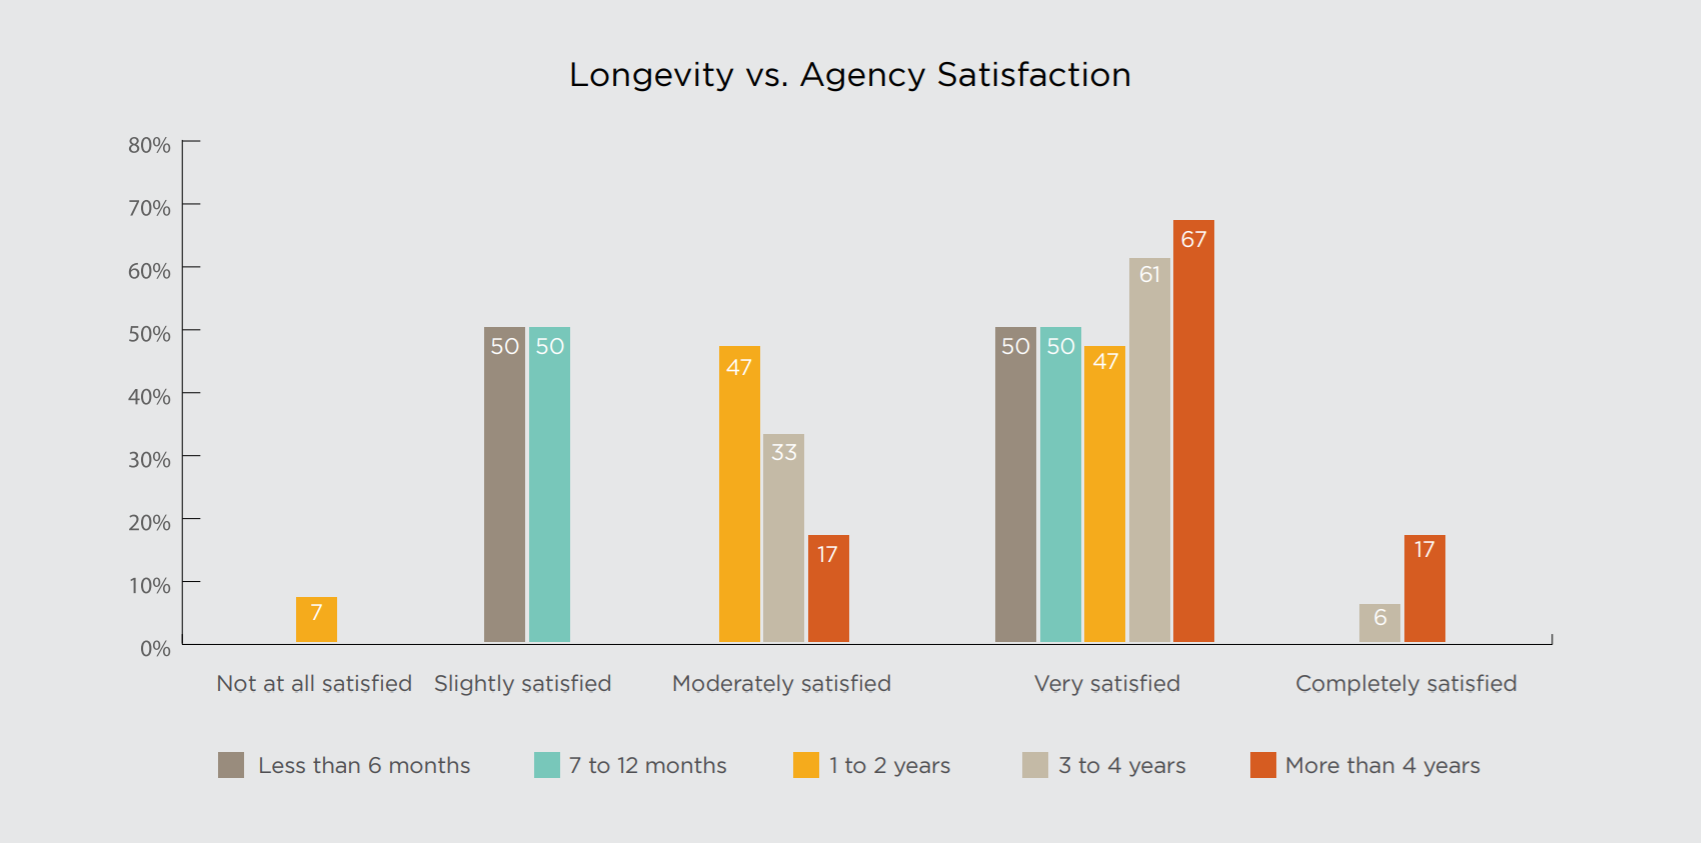 Agency satisfaction and longevity